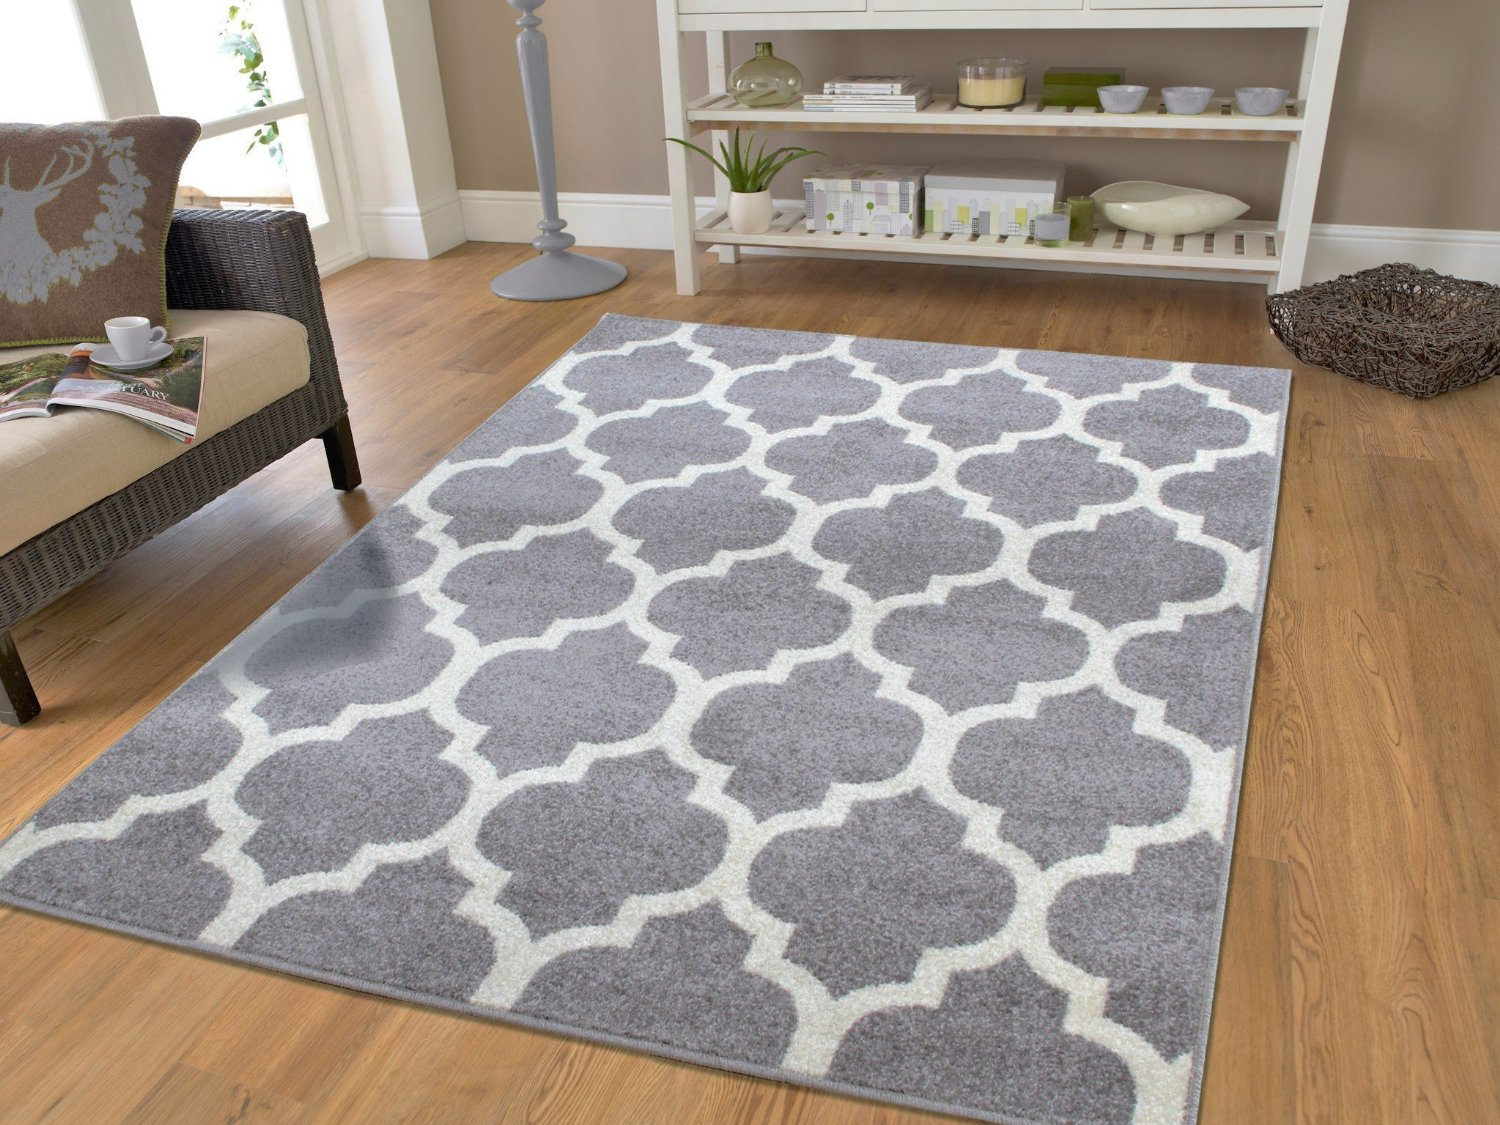 Fashion Gray Rugs For Bedroom Grey Rugs 5x7 Dining Living Room Rugs For  Under The Table 5 By 7 Area Rugs On Clearance 5x8   Walmart.com